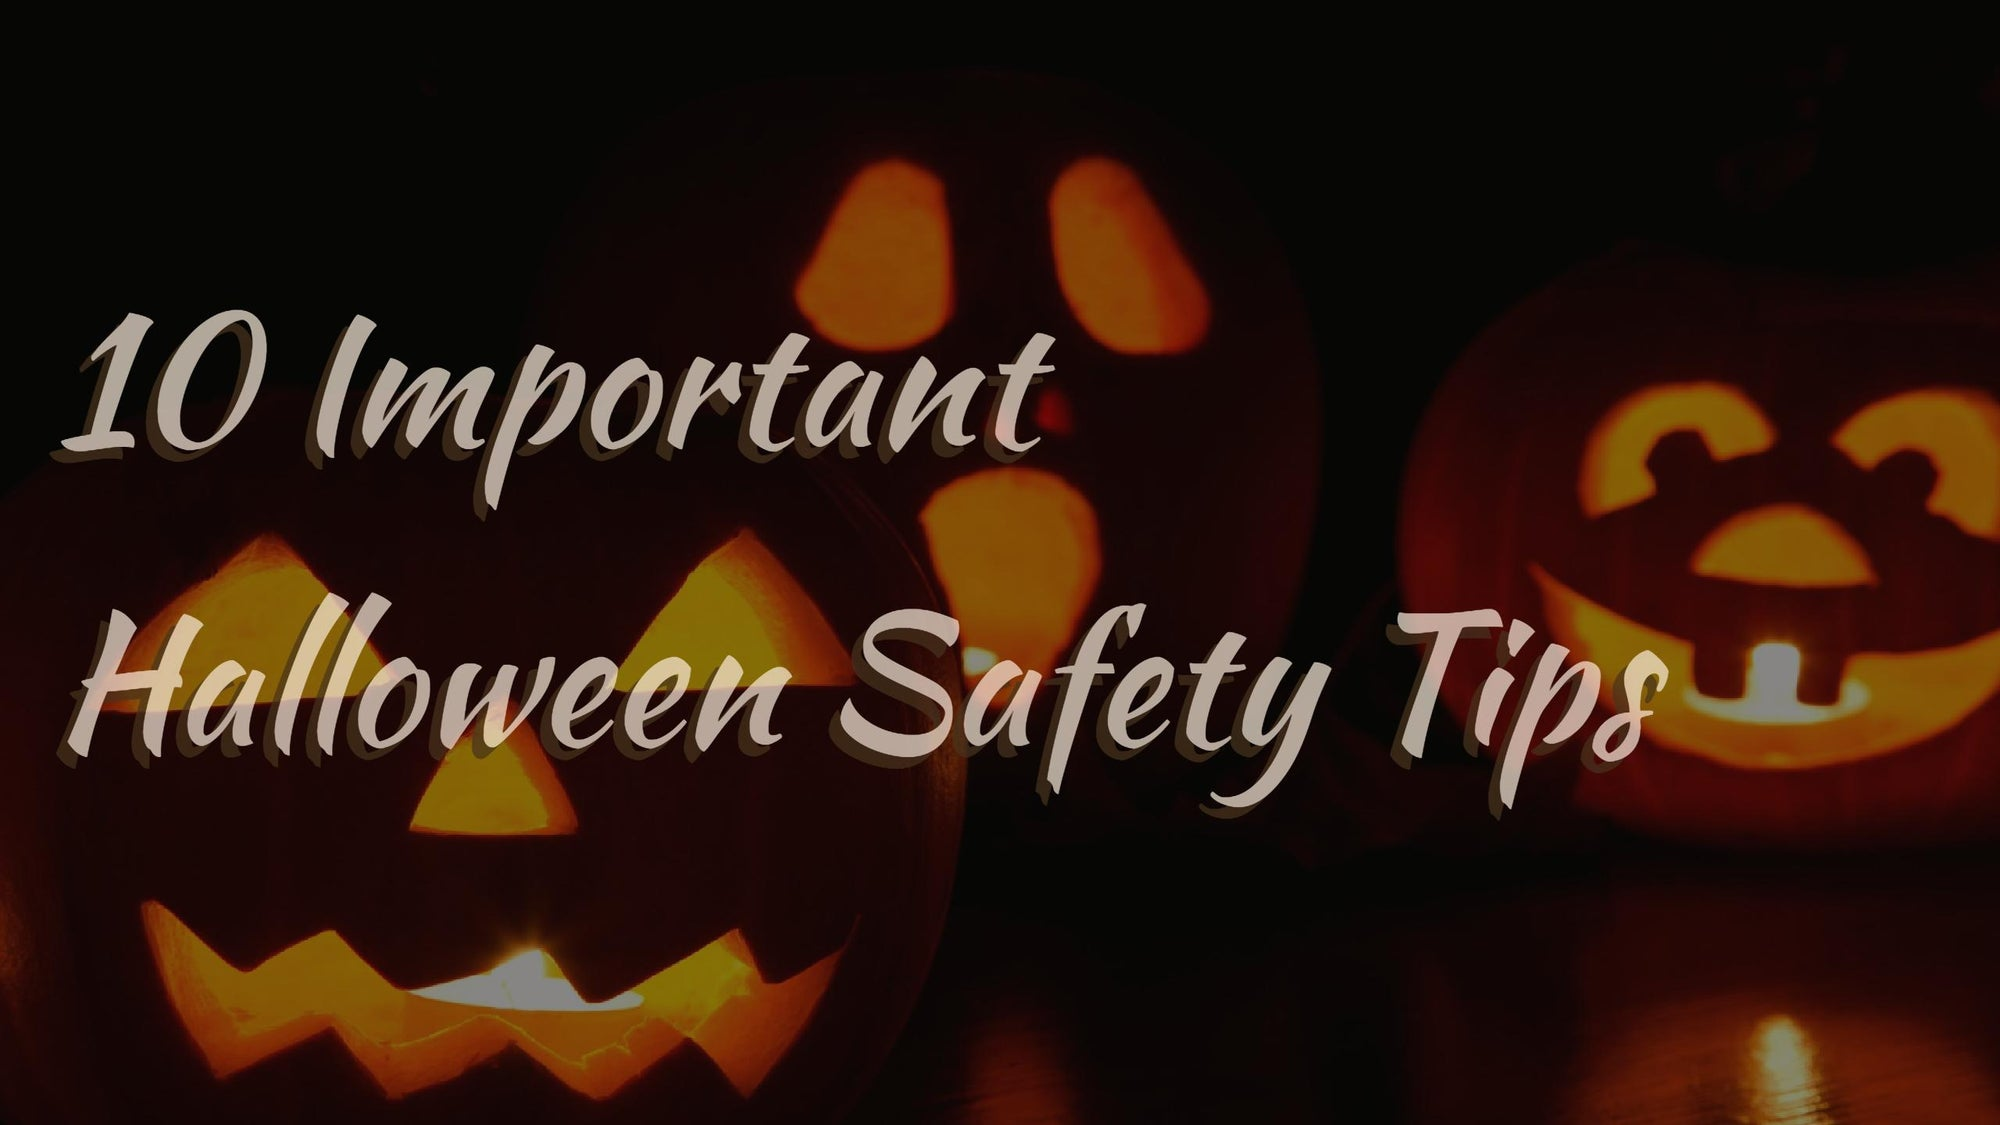 10 Important Halloween Safety Tips You Don't Want to Miss